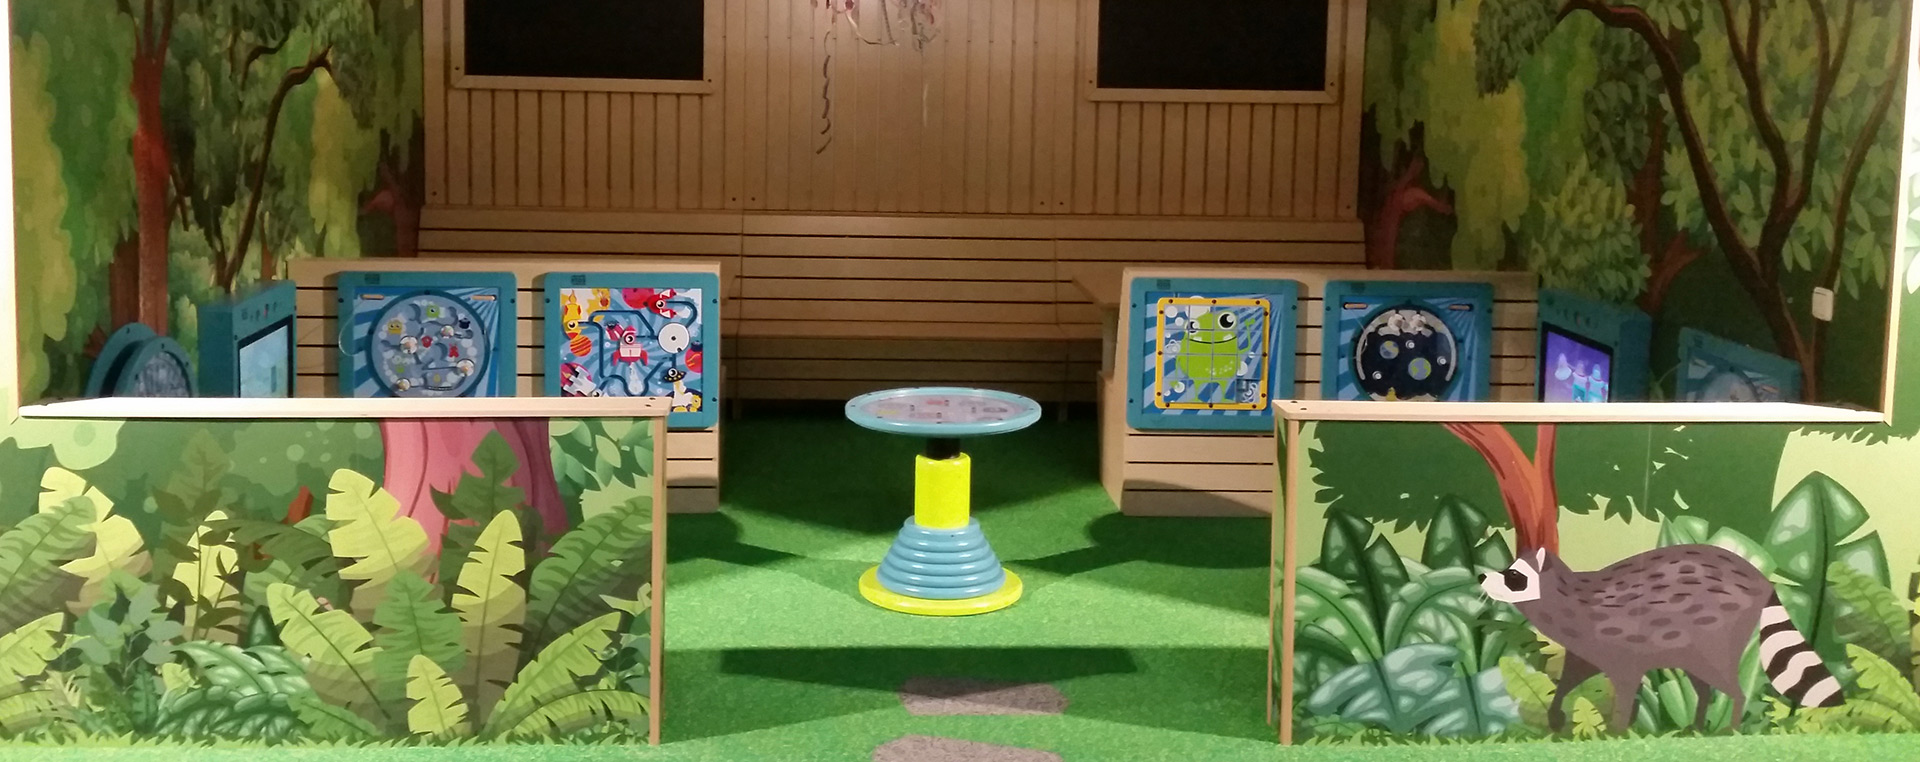 Möbel Hesse indoor playground | IKC